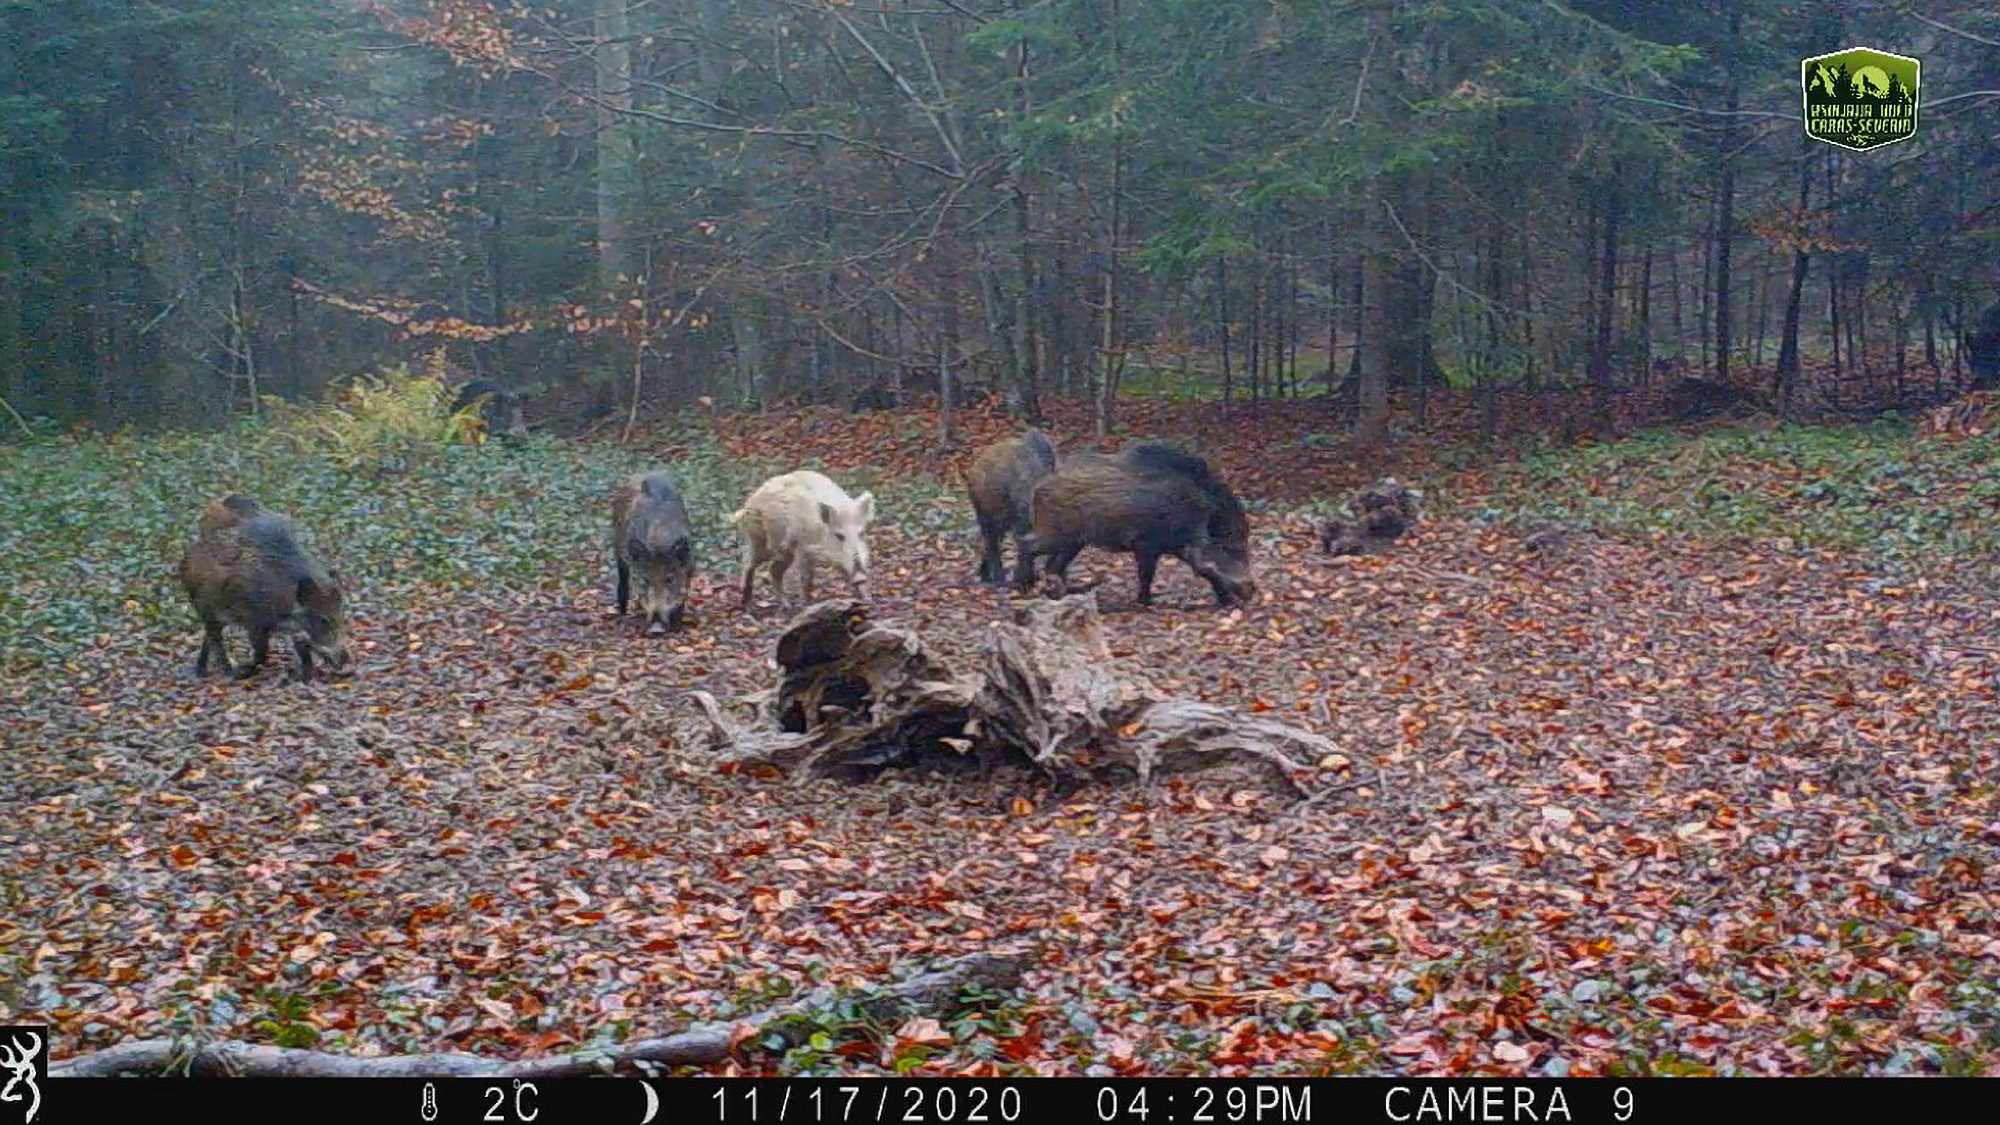 VIDEO: Rare White Boar Seen in Romanian Woods